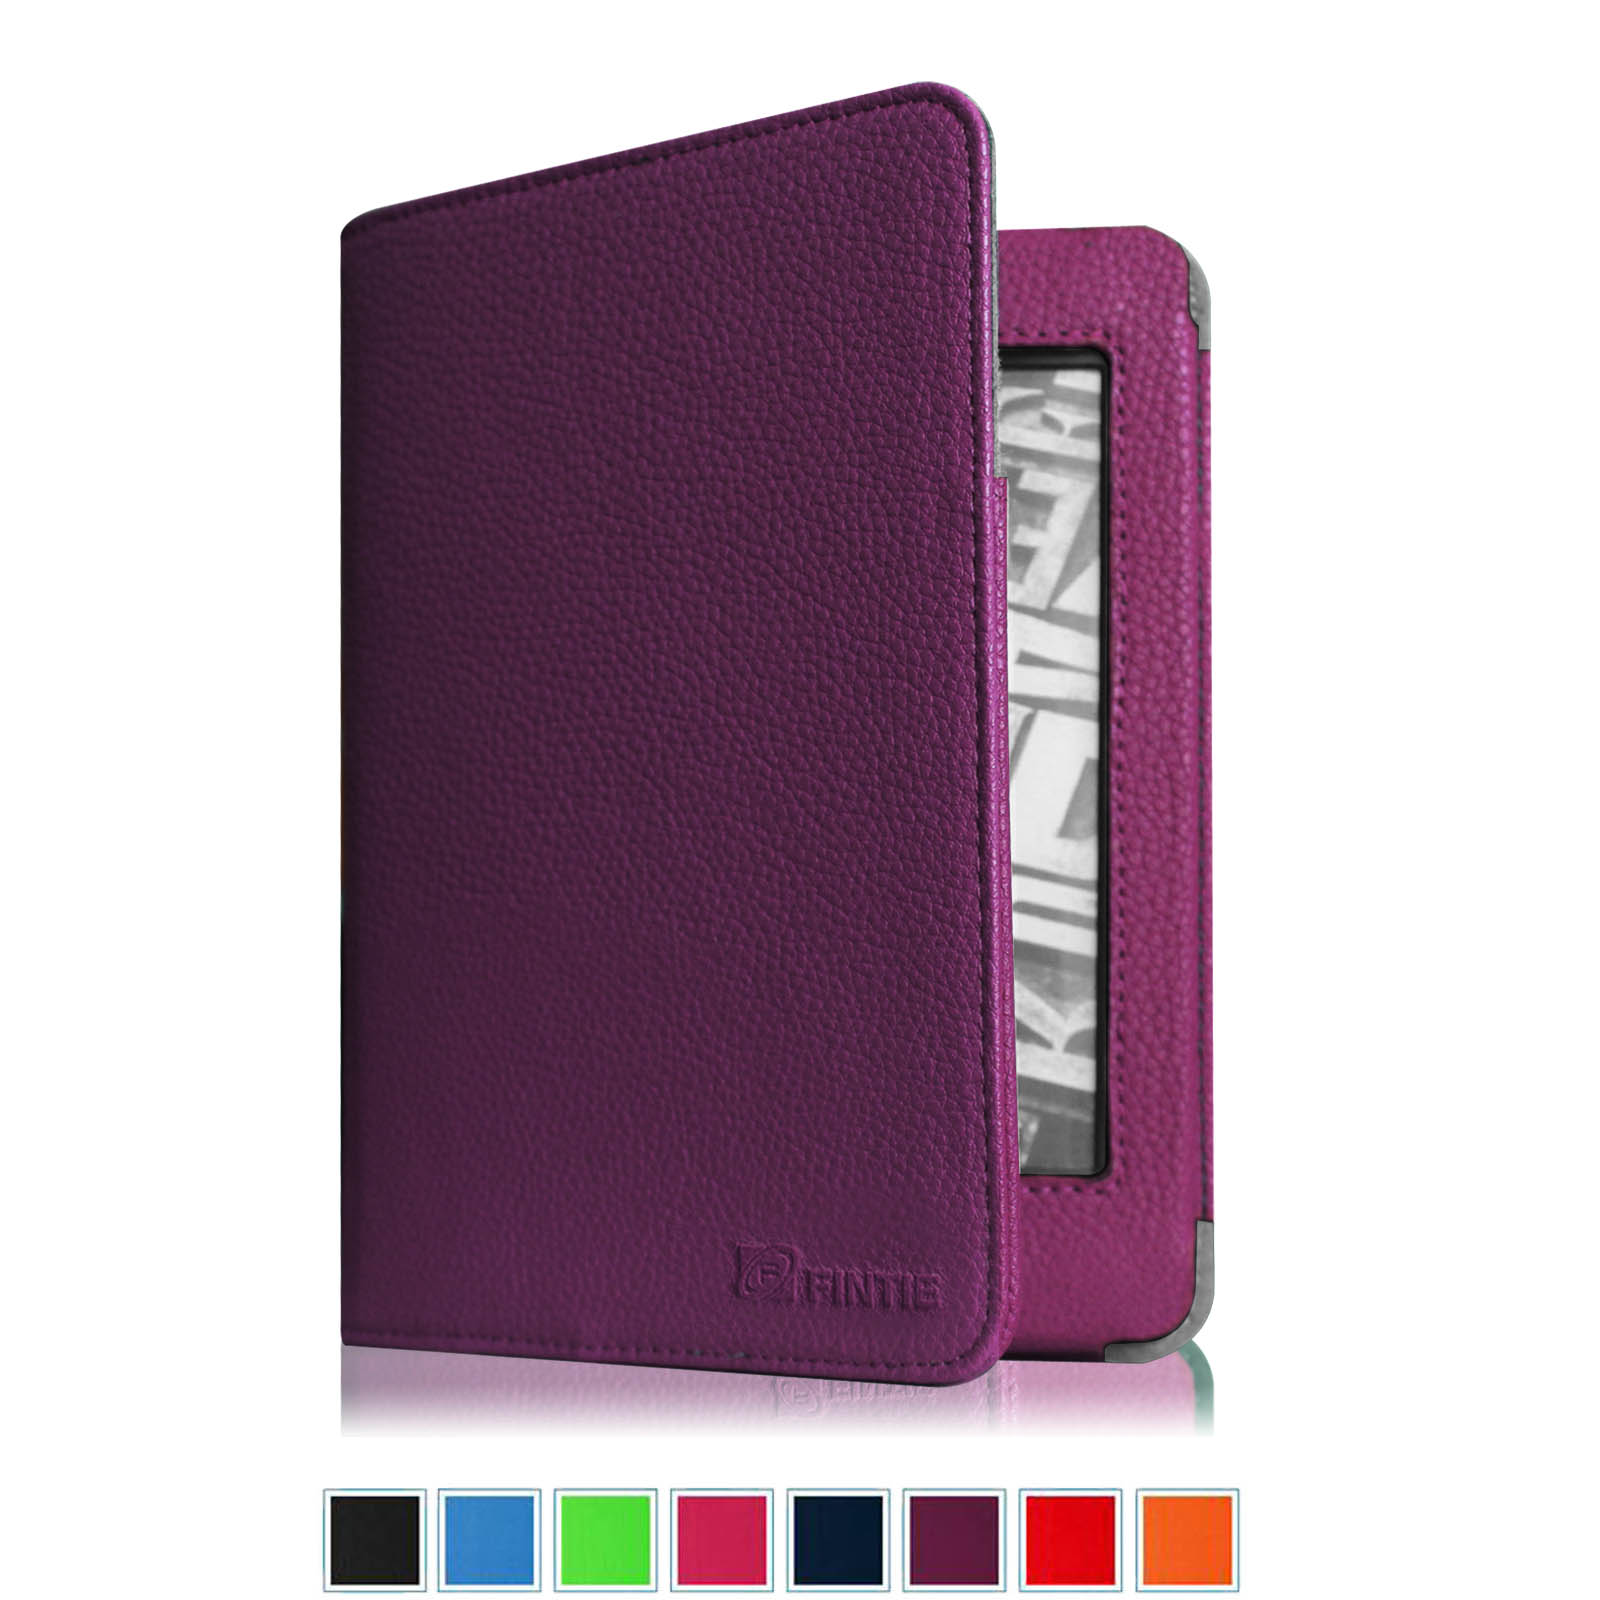 "Amazon Kindle 7th Gen (2014 Model) 6"" Display Folio Case - Fintie Slim Fit Protective PU Leather Cover, Purple"